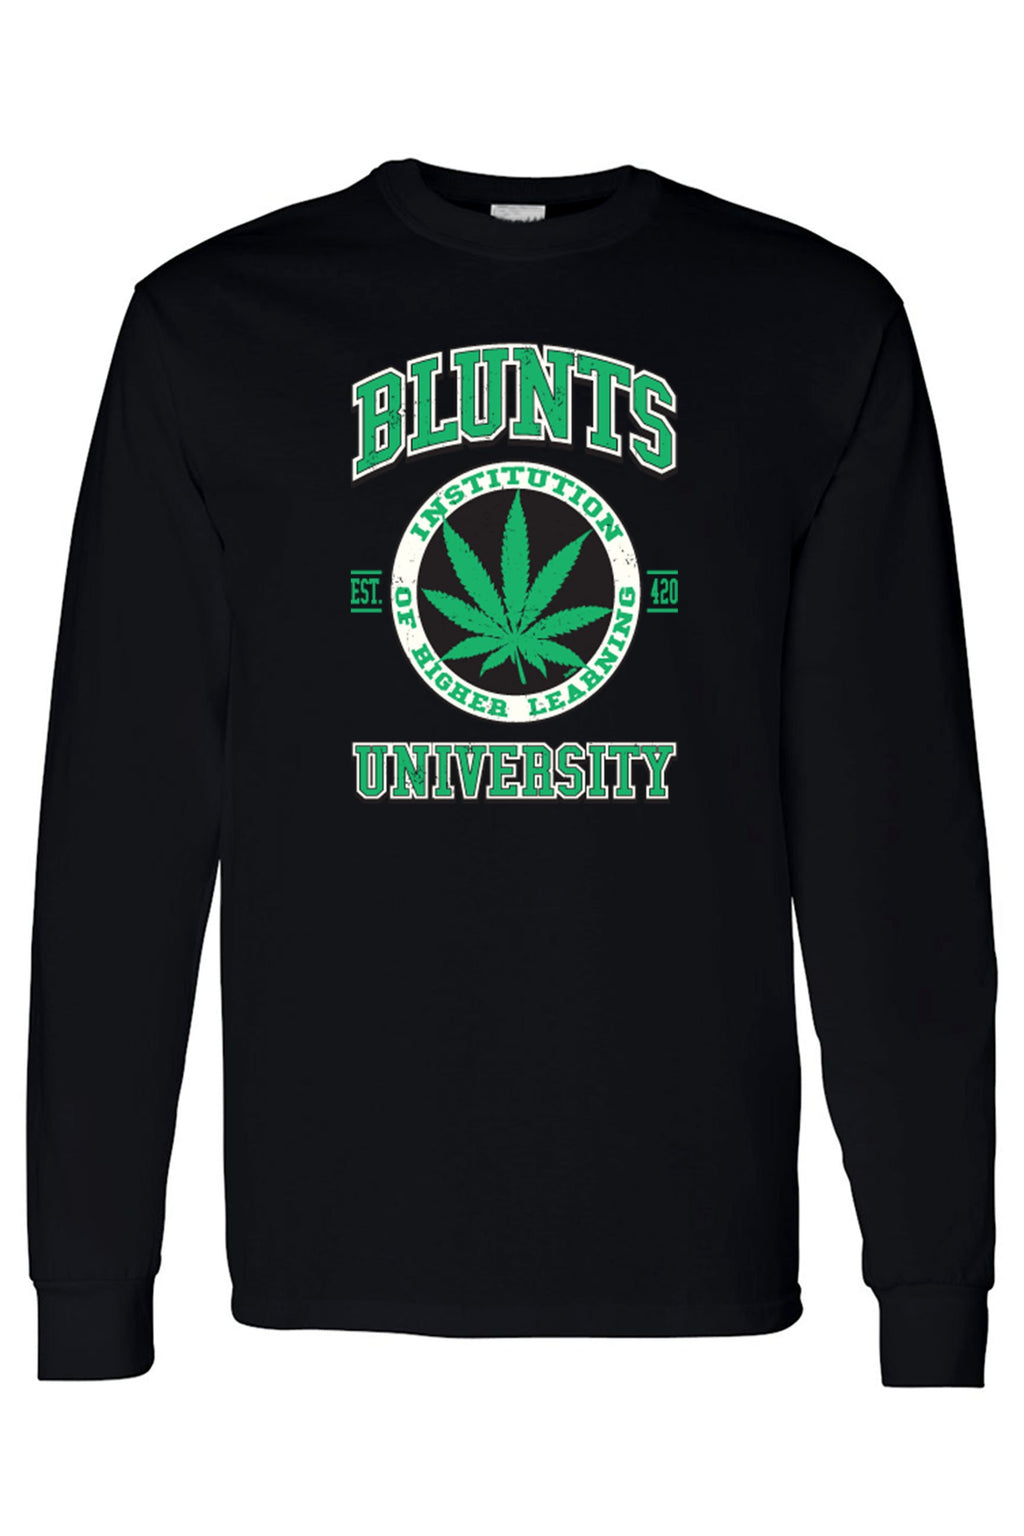 Unisex Blunts Institution of Higher Learning University Long Sleeve shirt